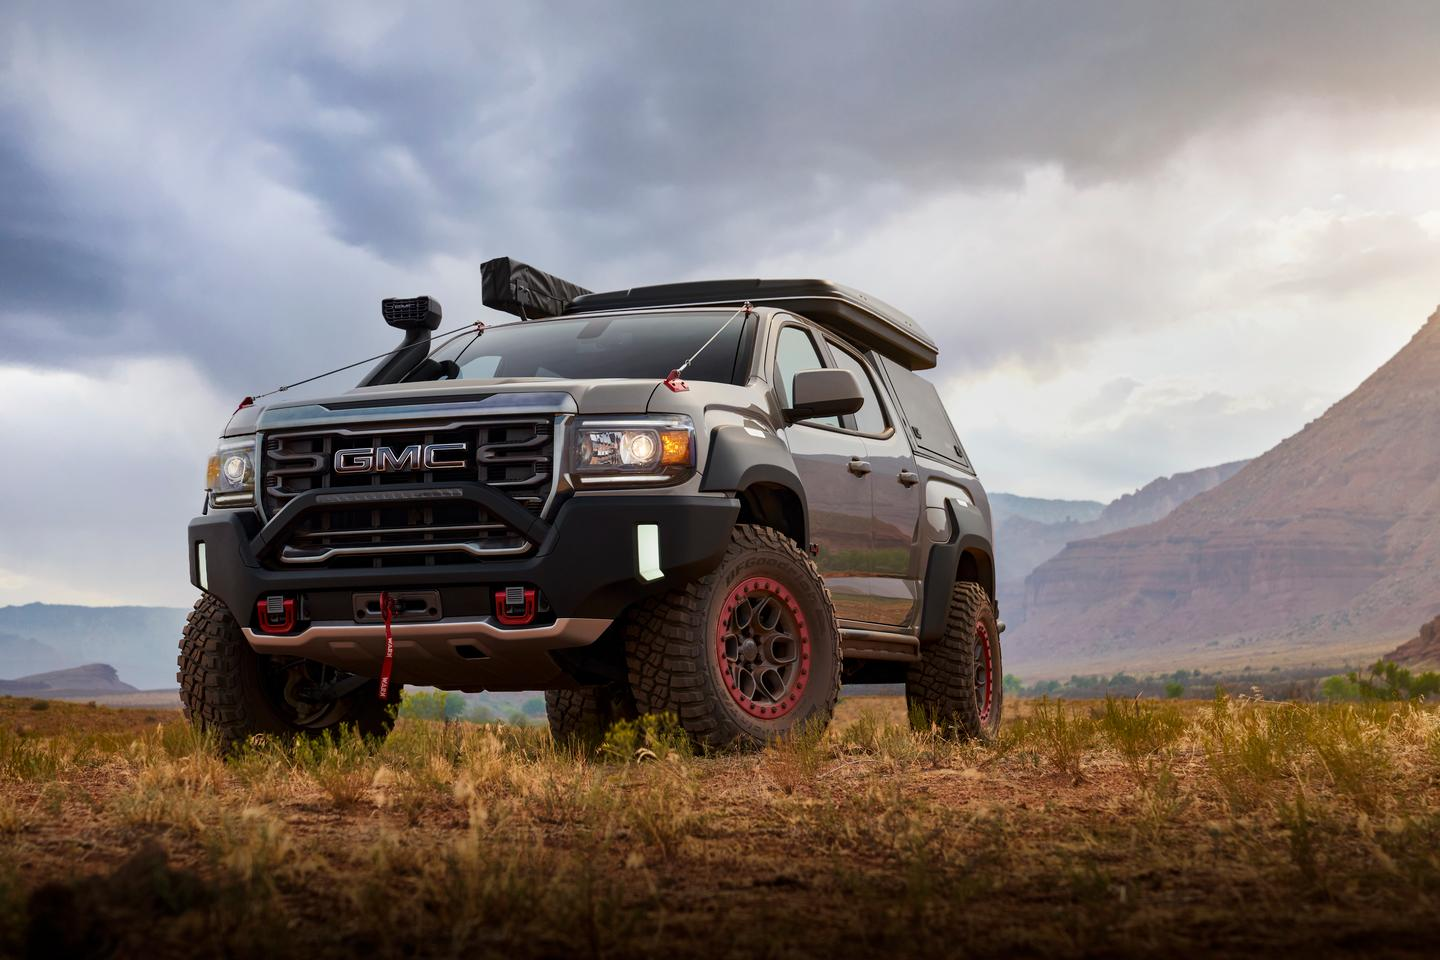 """""""Consumer reaction to this concept's design will help us further serve the growing market of buyers leading authentic outdoor lifestyles,"""" said Buick and GMC Global VP, Duncan Aldred"""